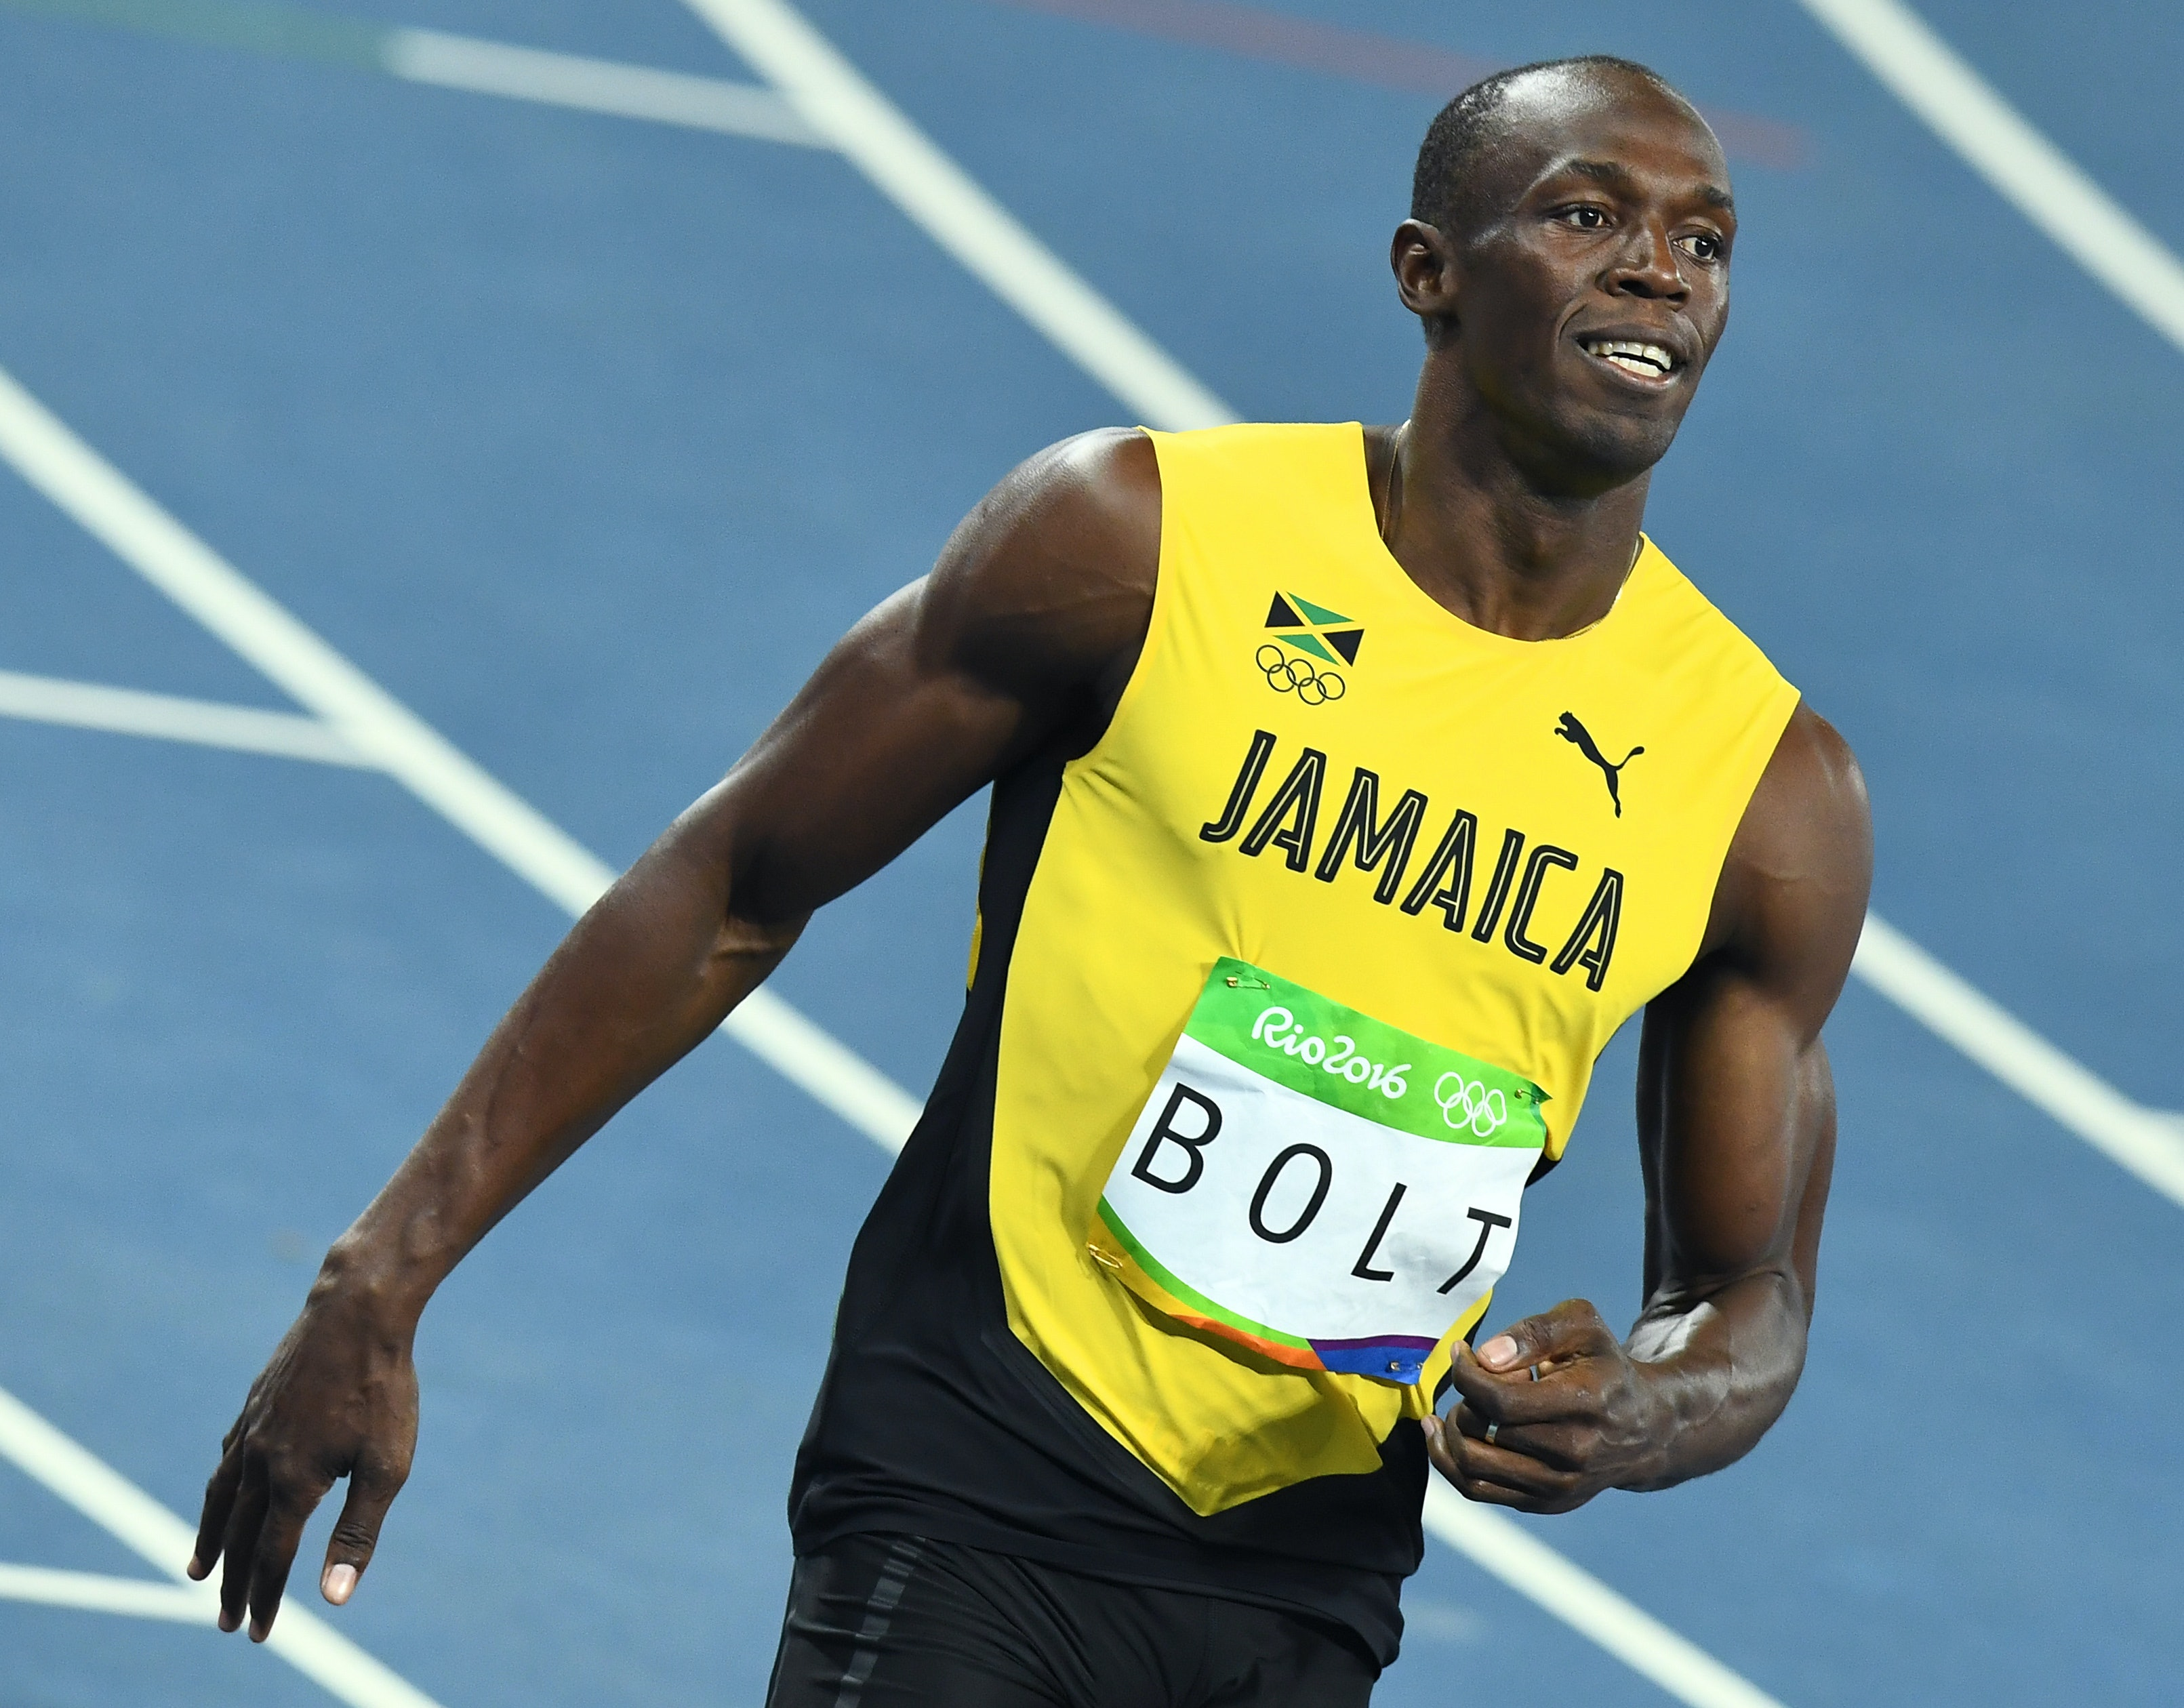 Why Did Usain Bolt Start Running? Track Wasn't The Olympic